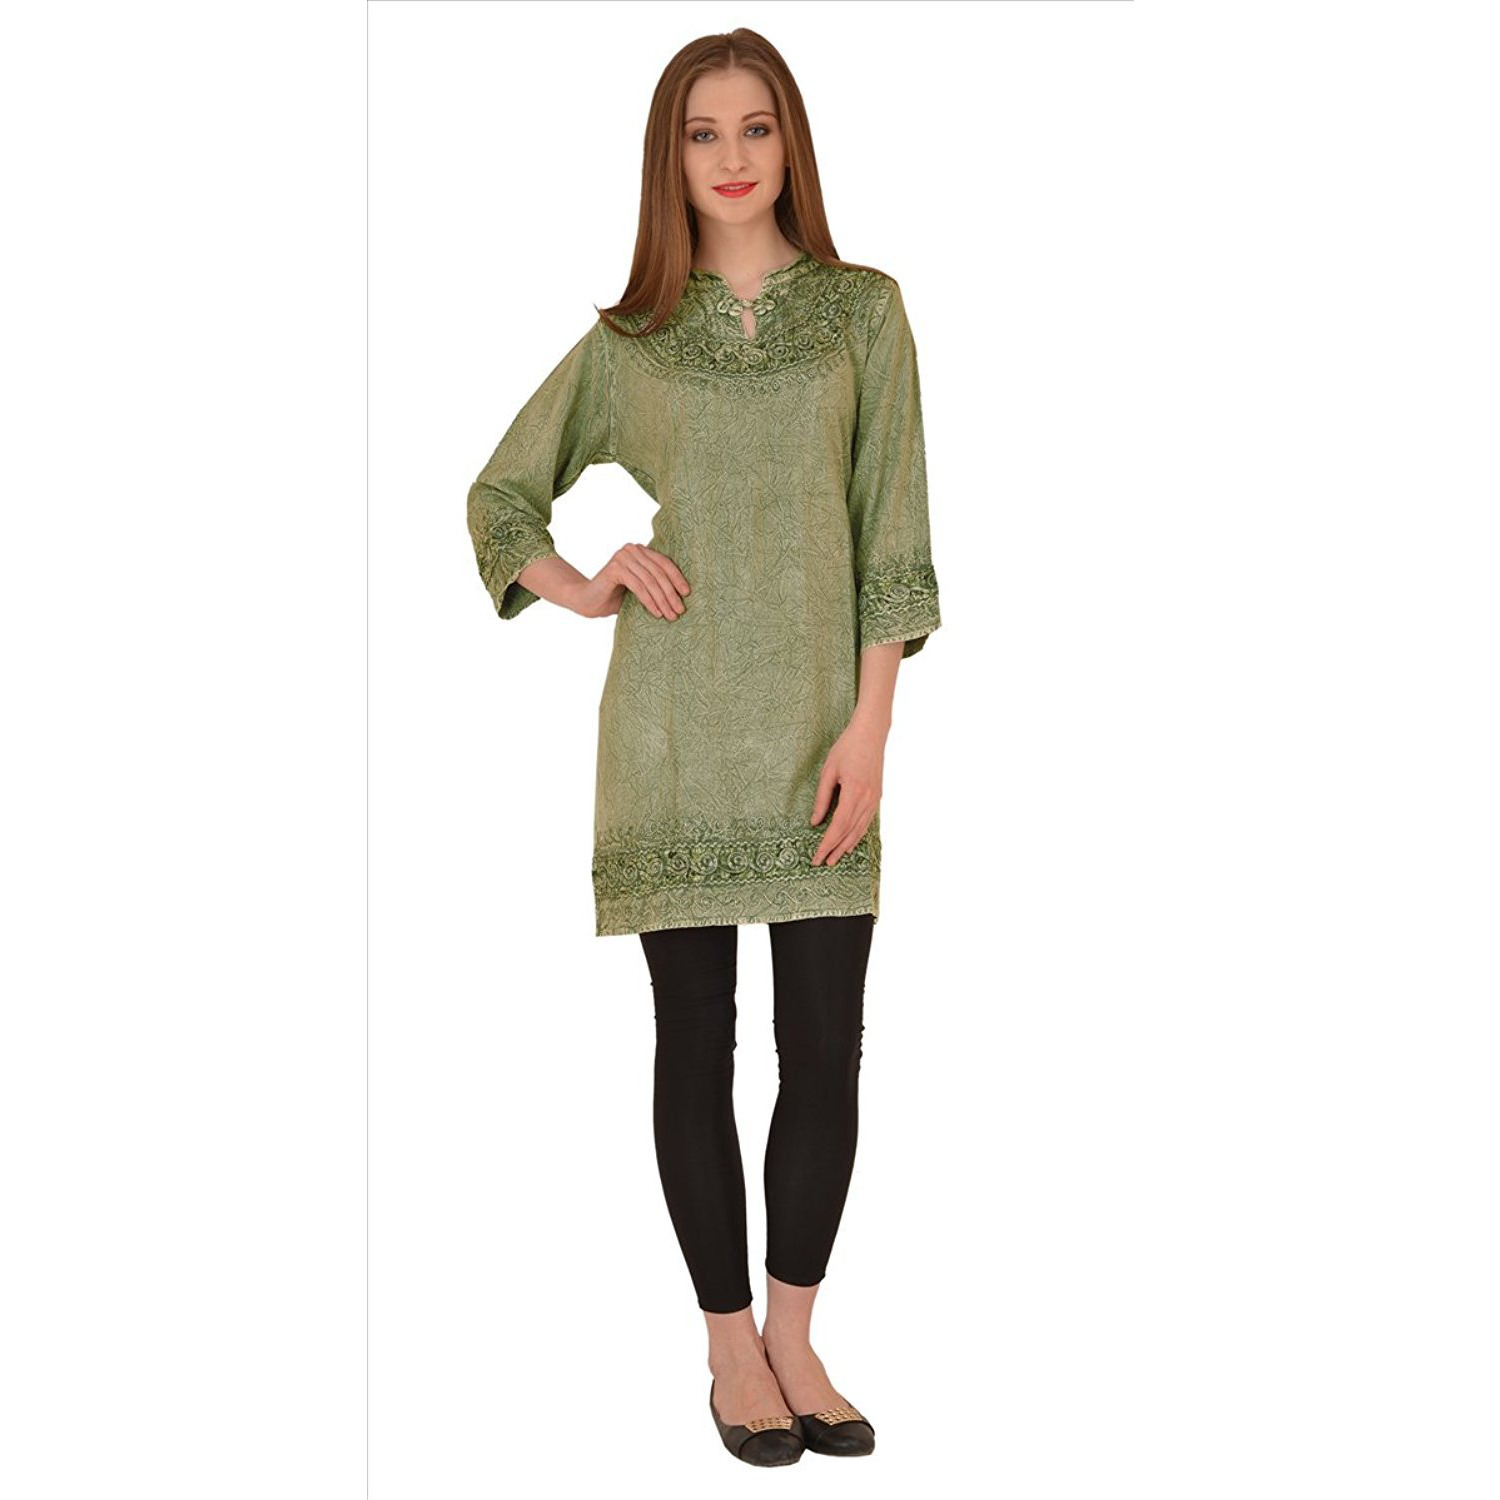 Sns Tunic Tops For Women, Stone Wash Rayon 3/4th Sleeves Mandarin Collar Tunics